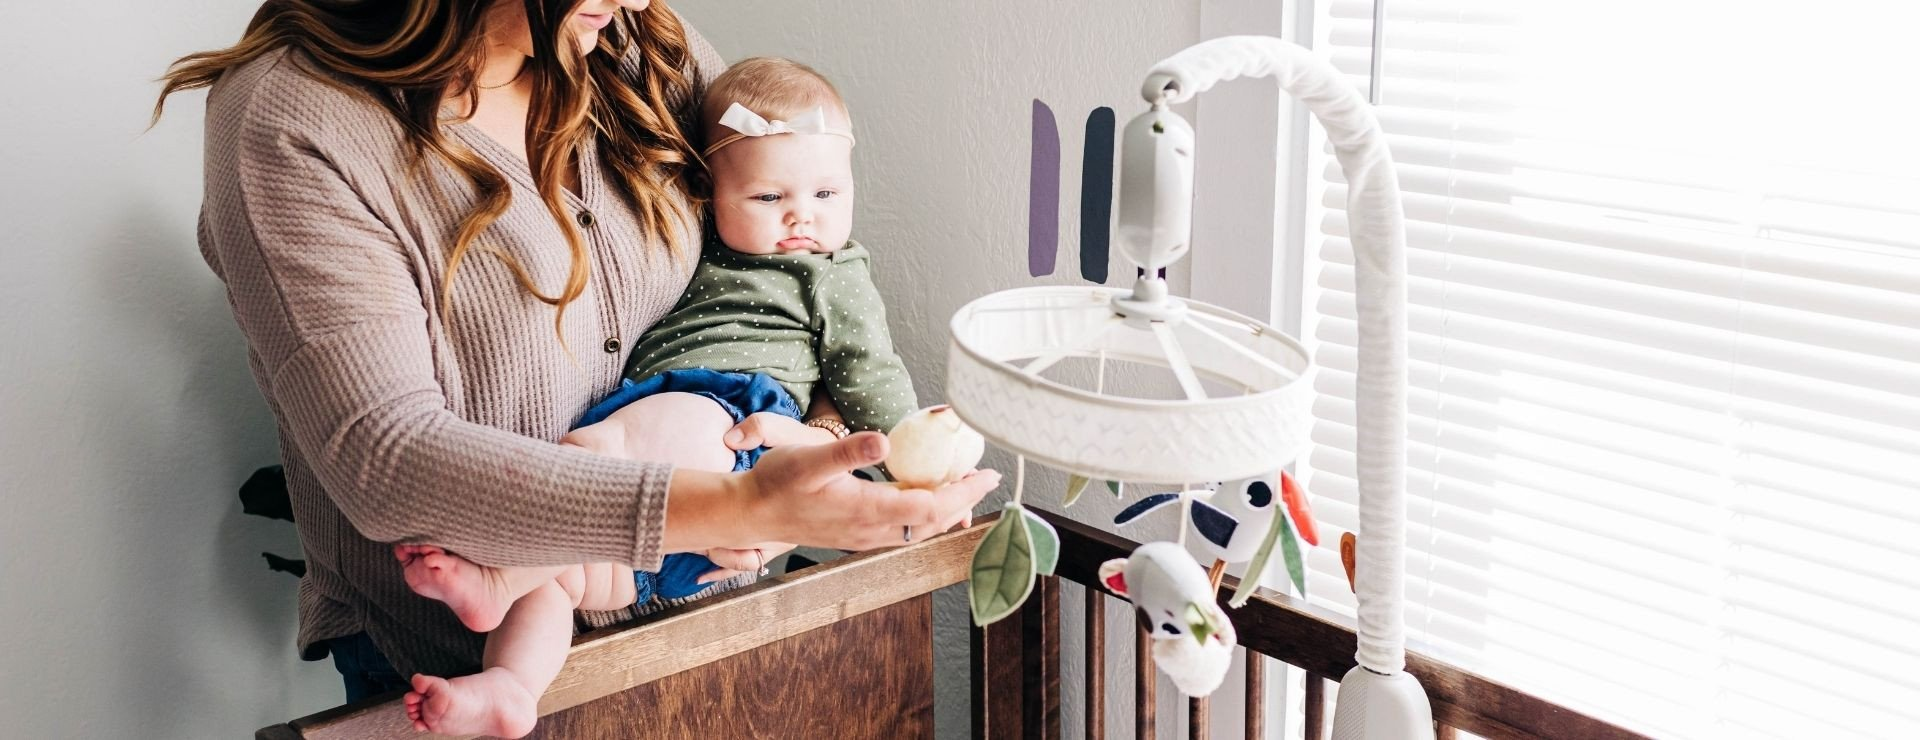 Reassuring atmosphere that will help your baby fall asleep